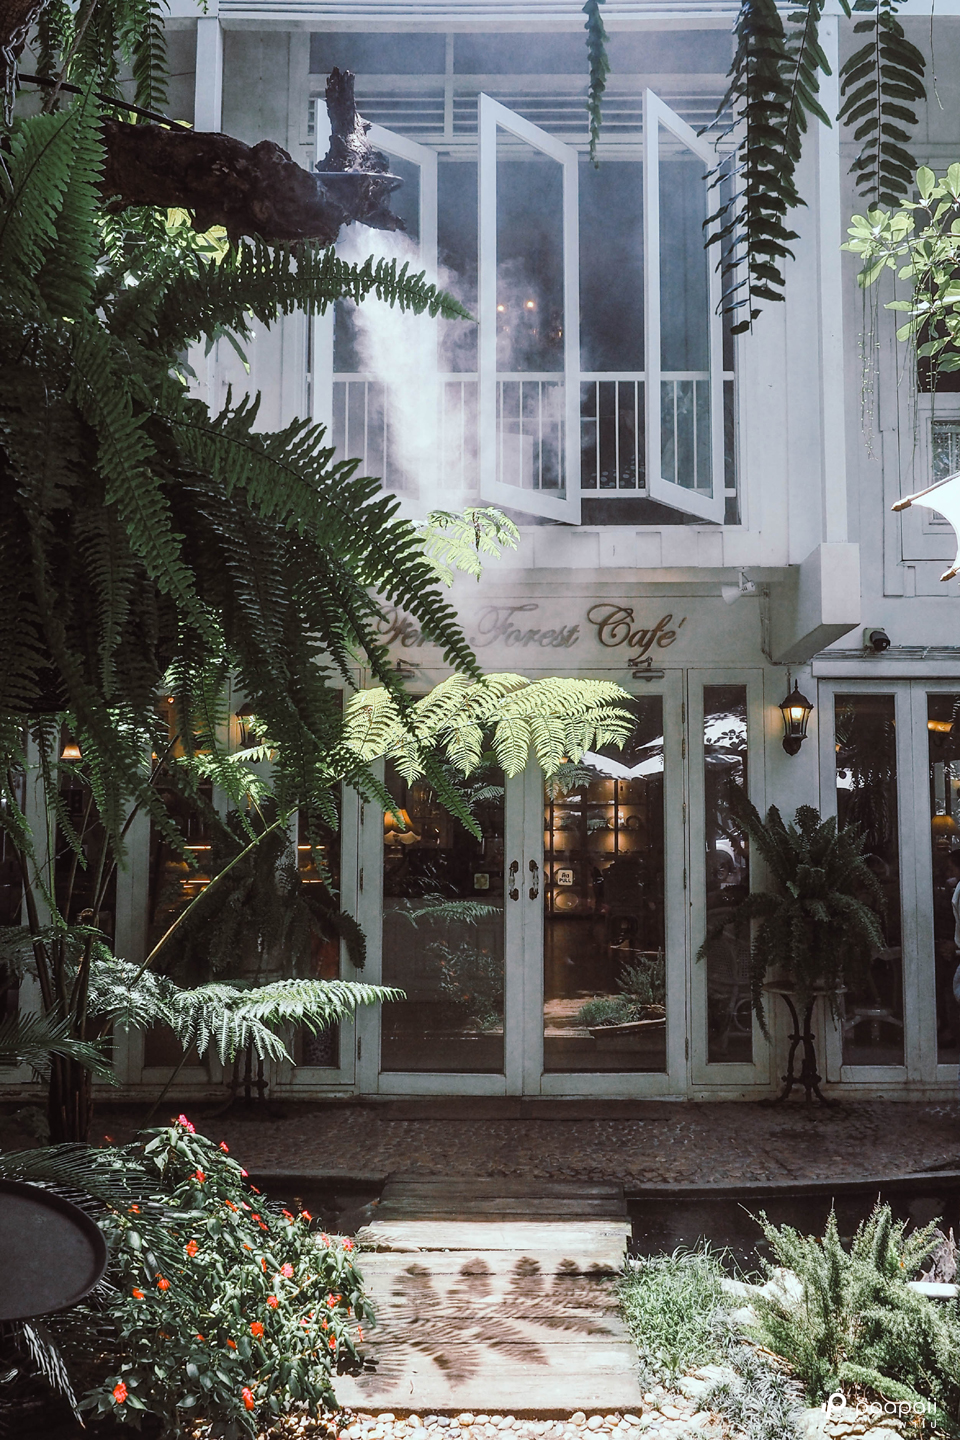 Fern Forest Cafe (2)